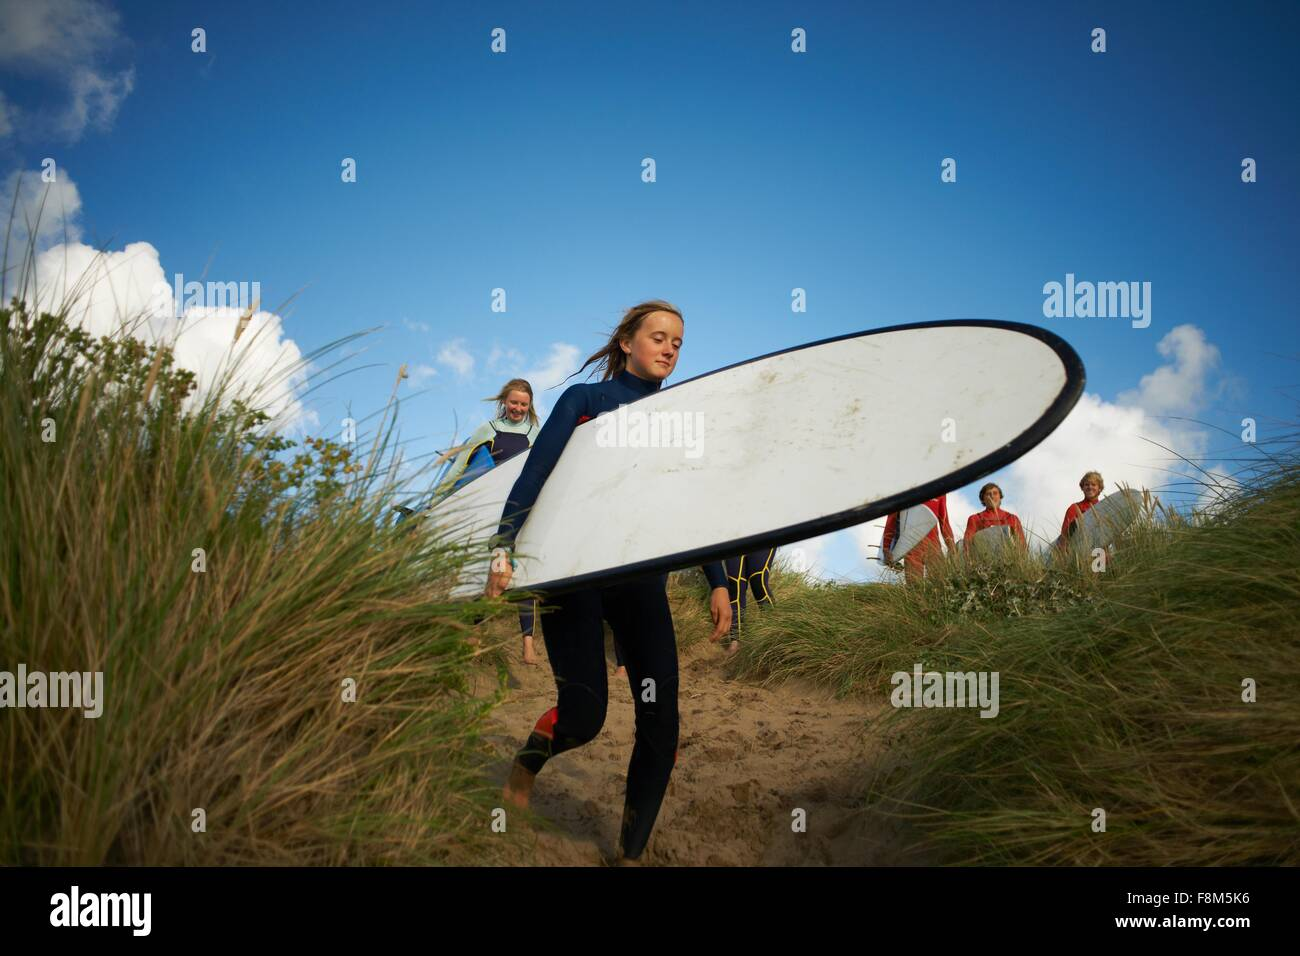 Group of surfers heading towards sea, carrying surfboards - Stock Image